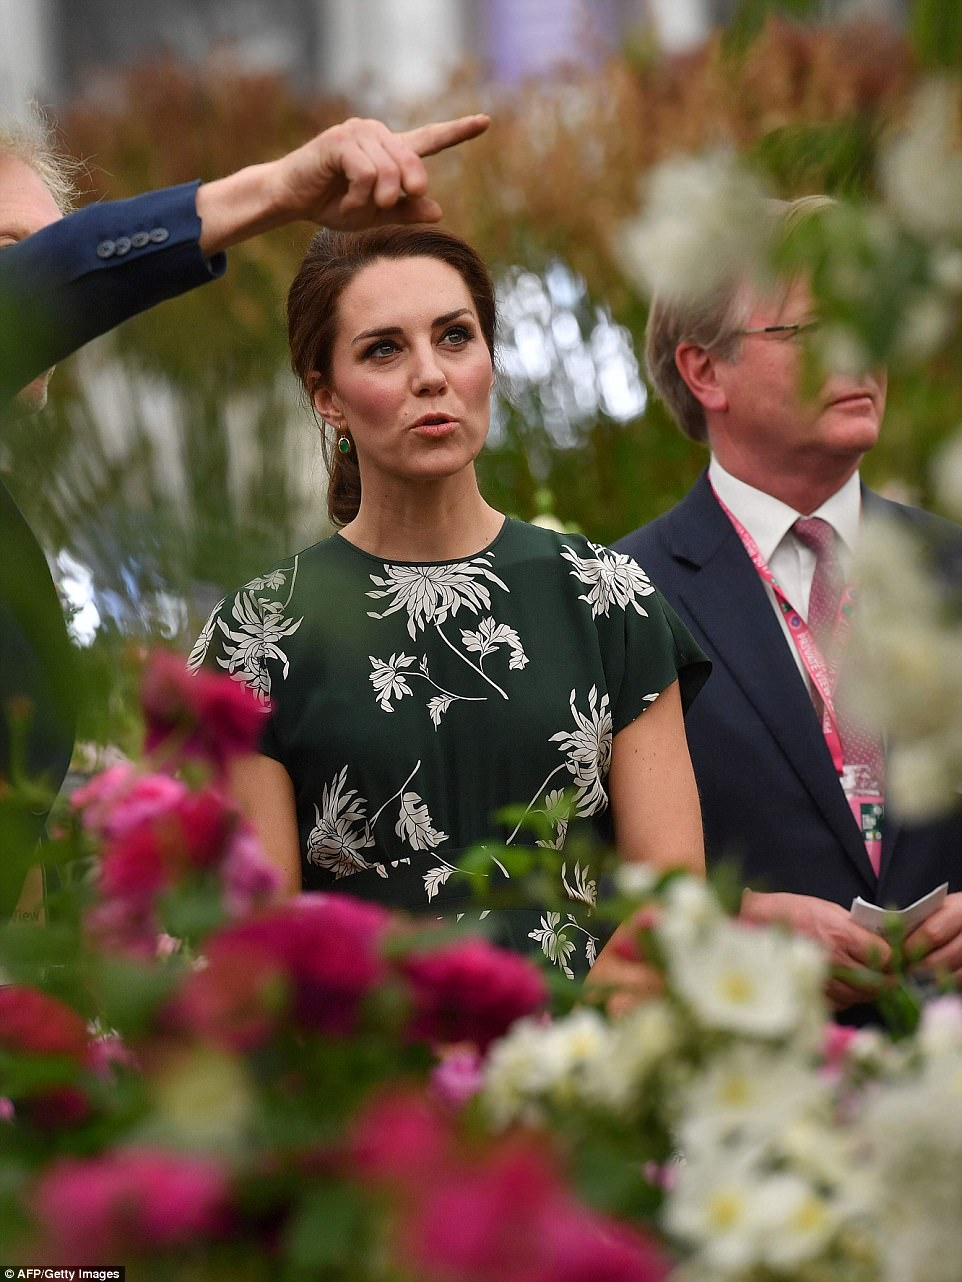 The Cambridges have their own expansive kitchen garden at Anmer Hall, in Norfolk, where they grow asparagus